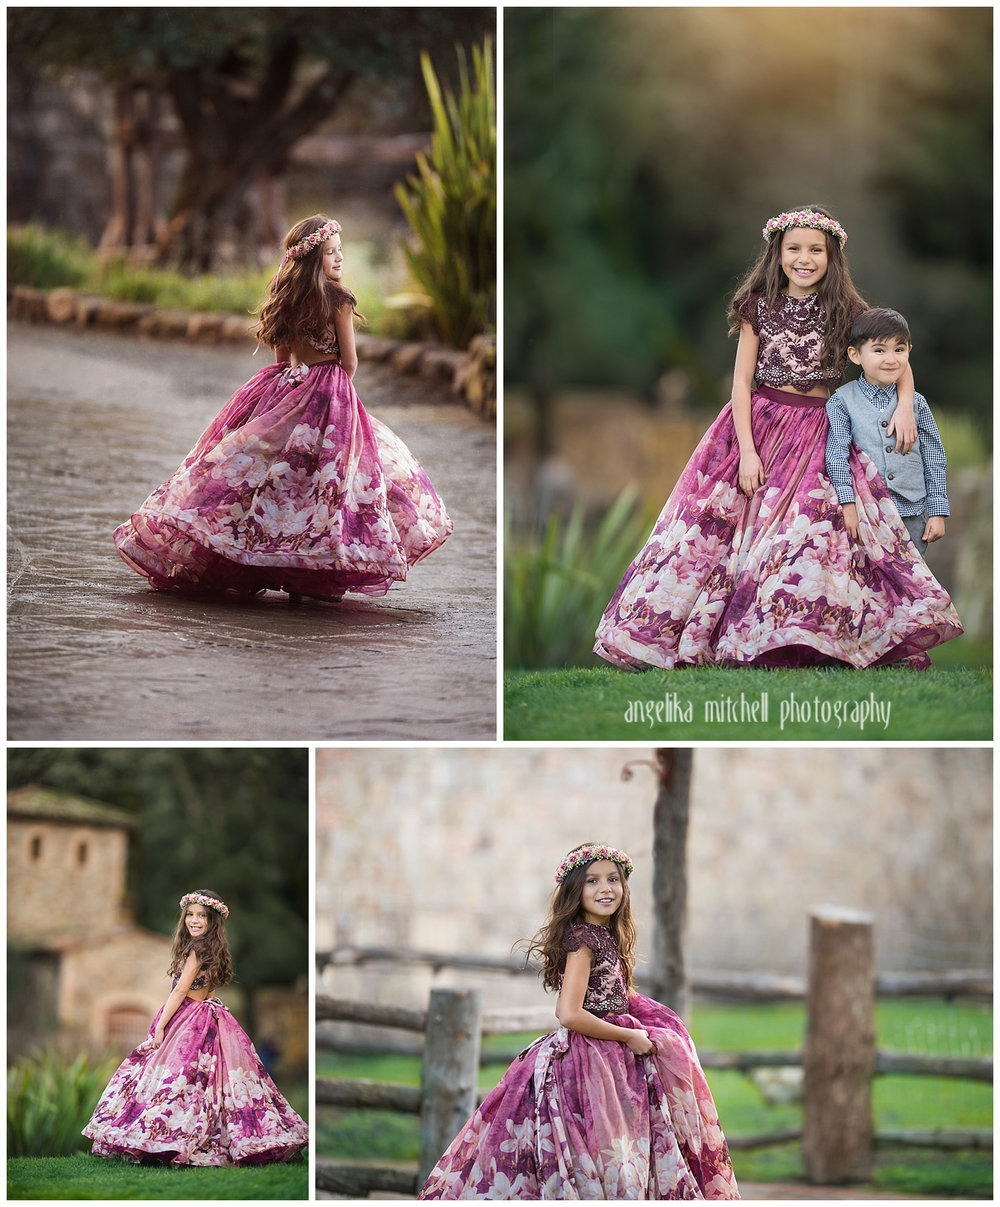 Princess Photo Shoot- Angelika Mitchell Photography- Sonoma County